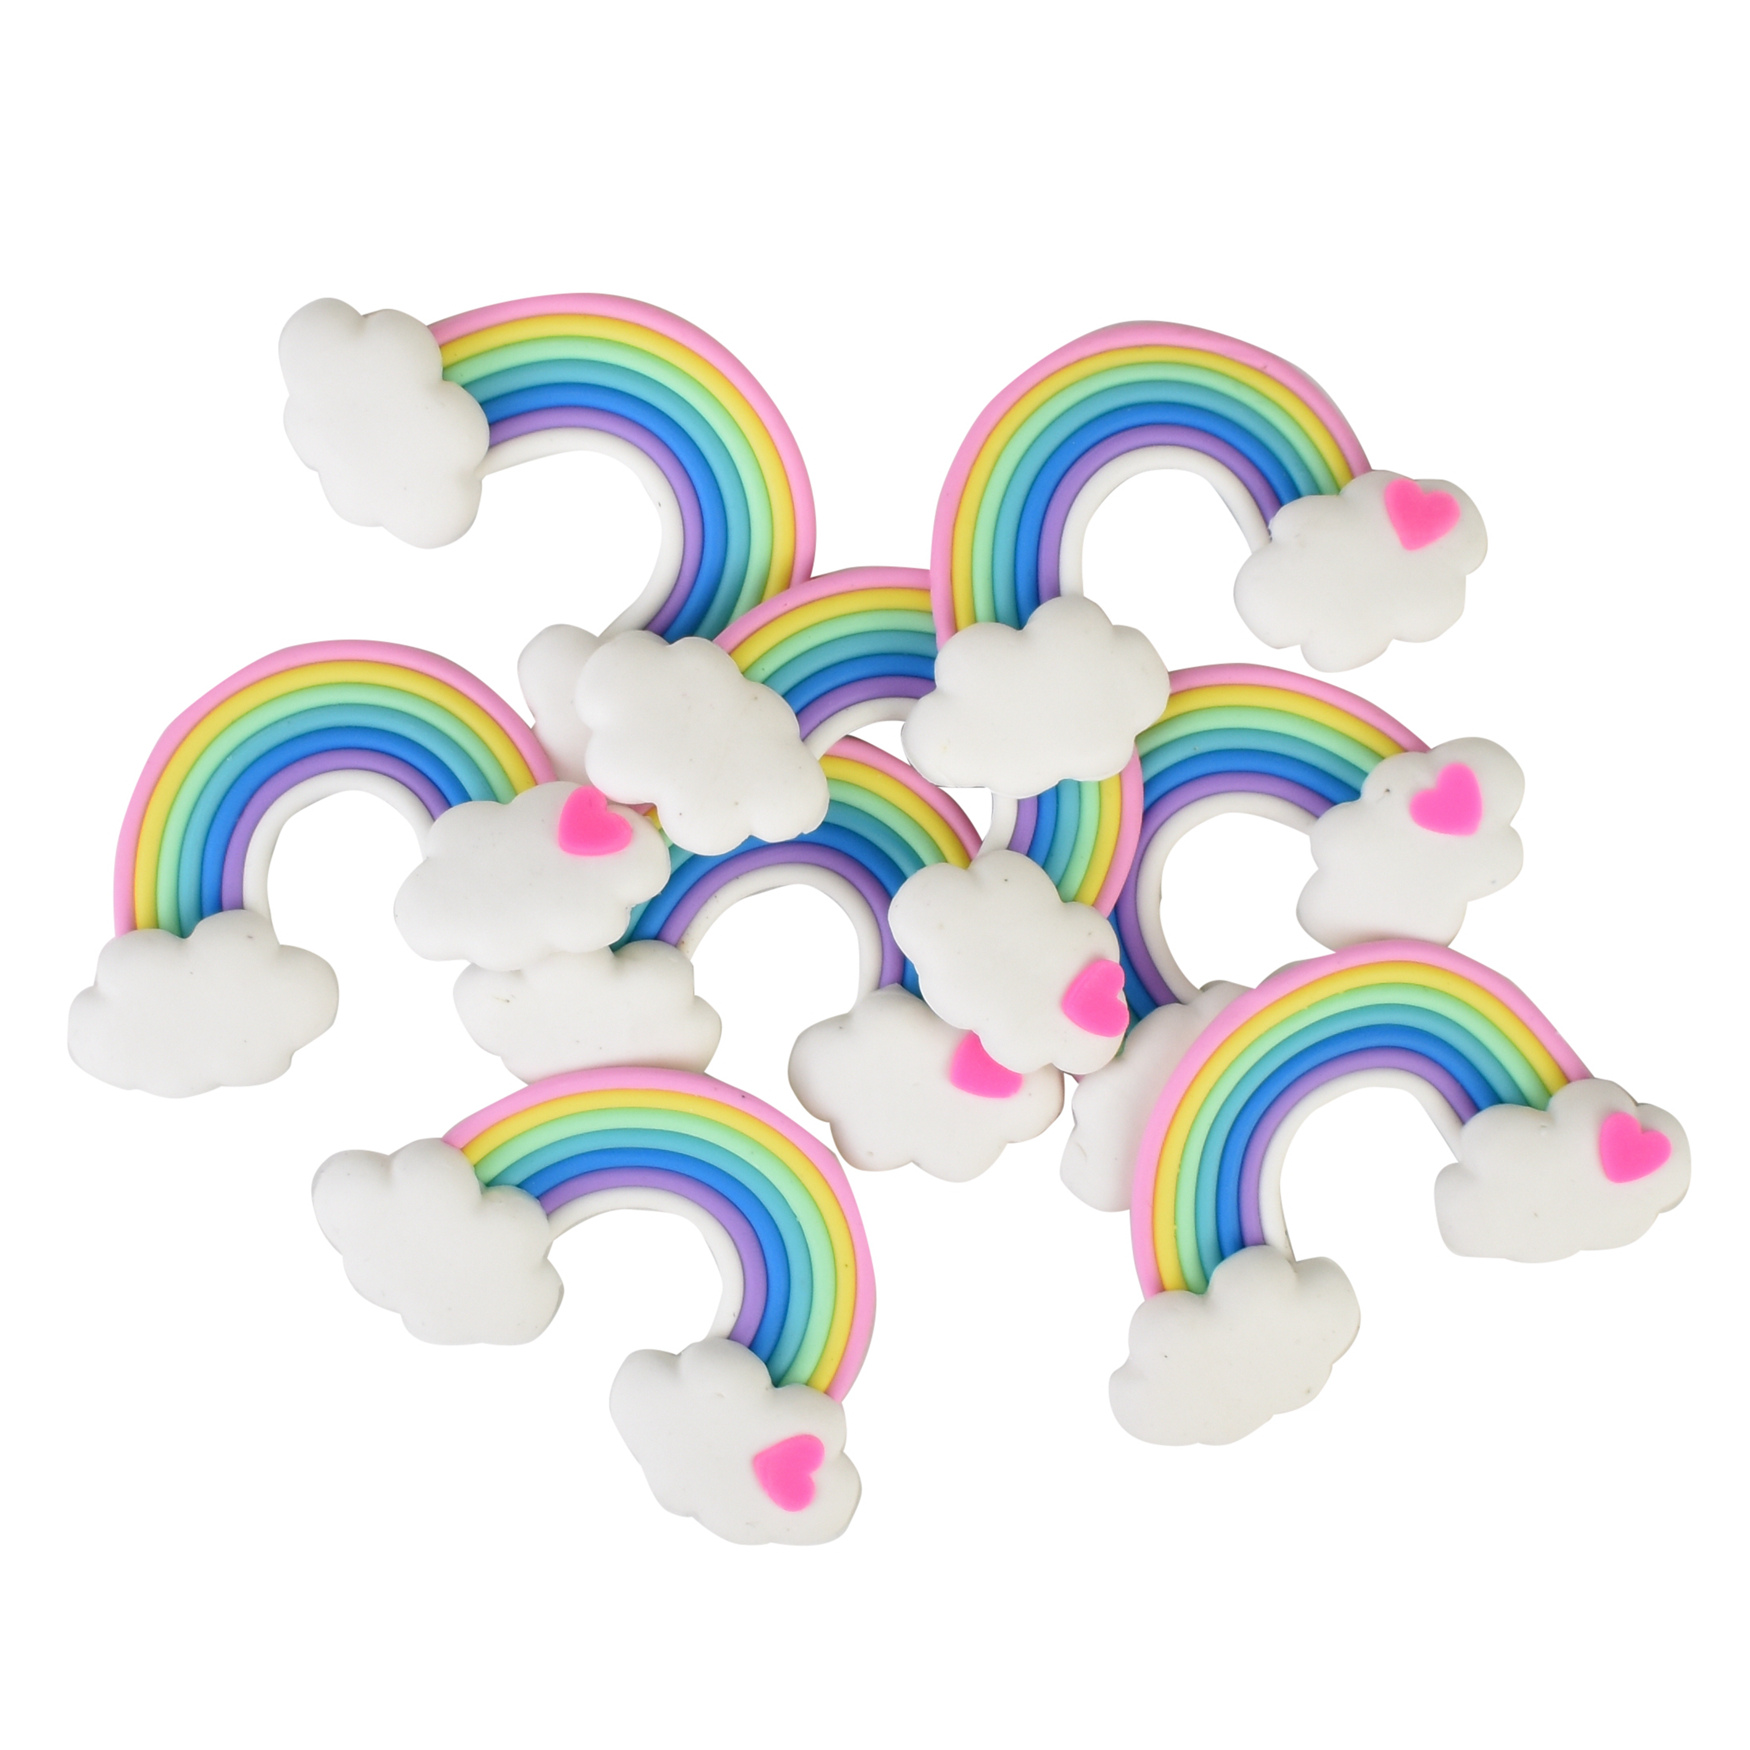 HSDCraft rainbow Series 3D <strong>Resin</strong> planar <strong>resin</strong> for diy